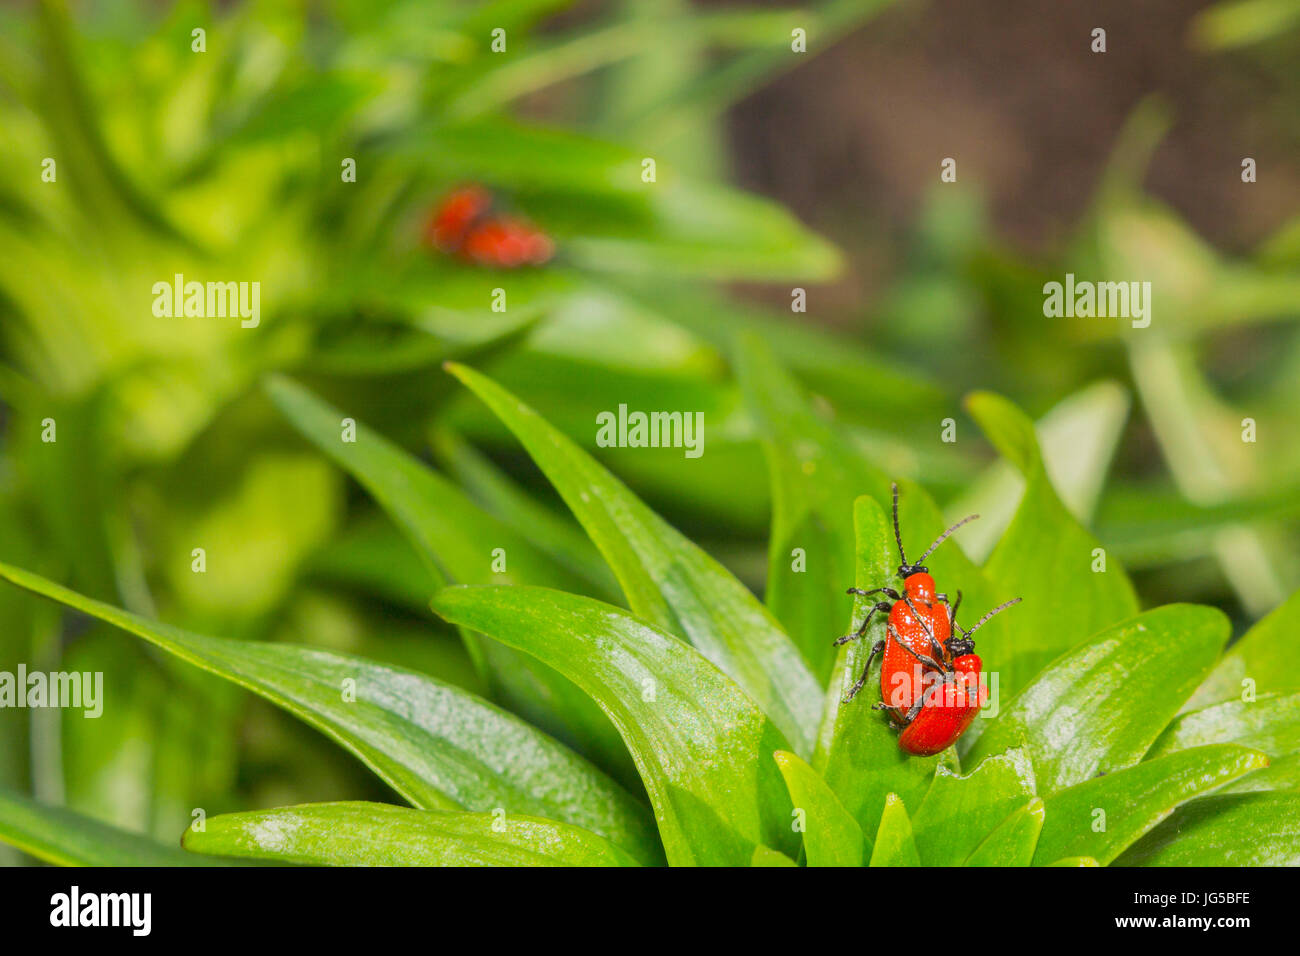 Two pairs of red beetles reproduce on green leaves - Stock Image